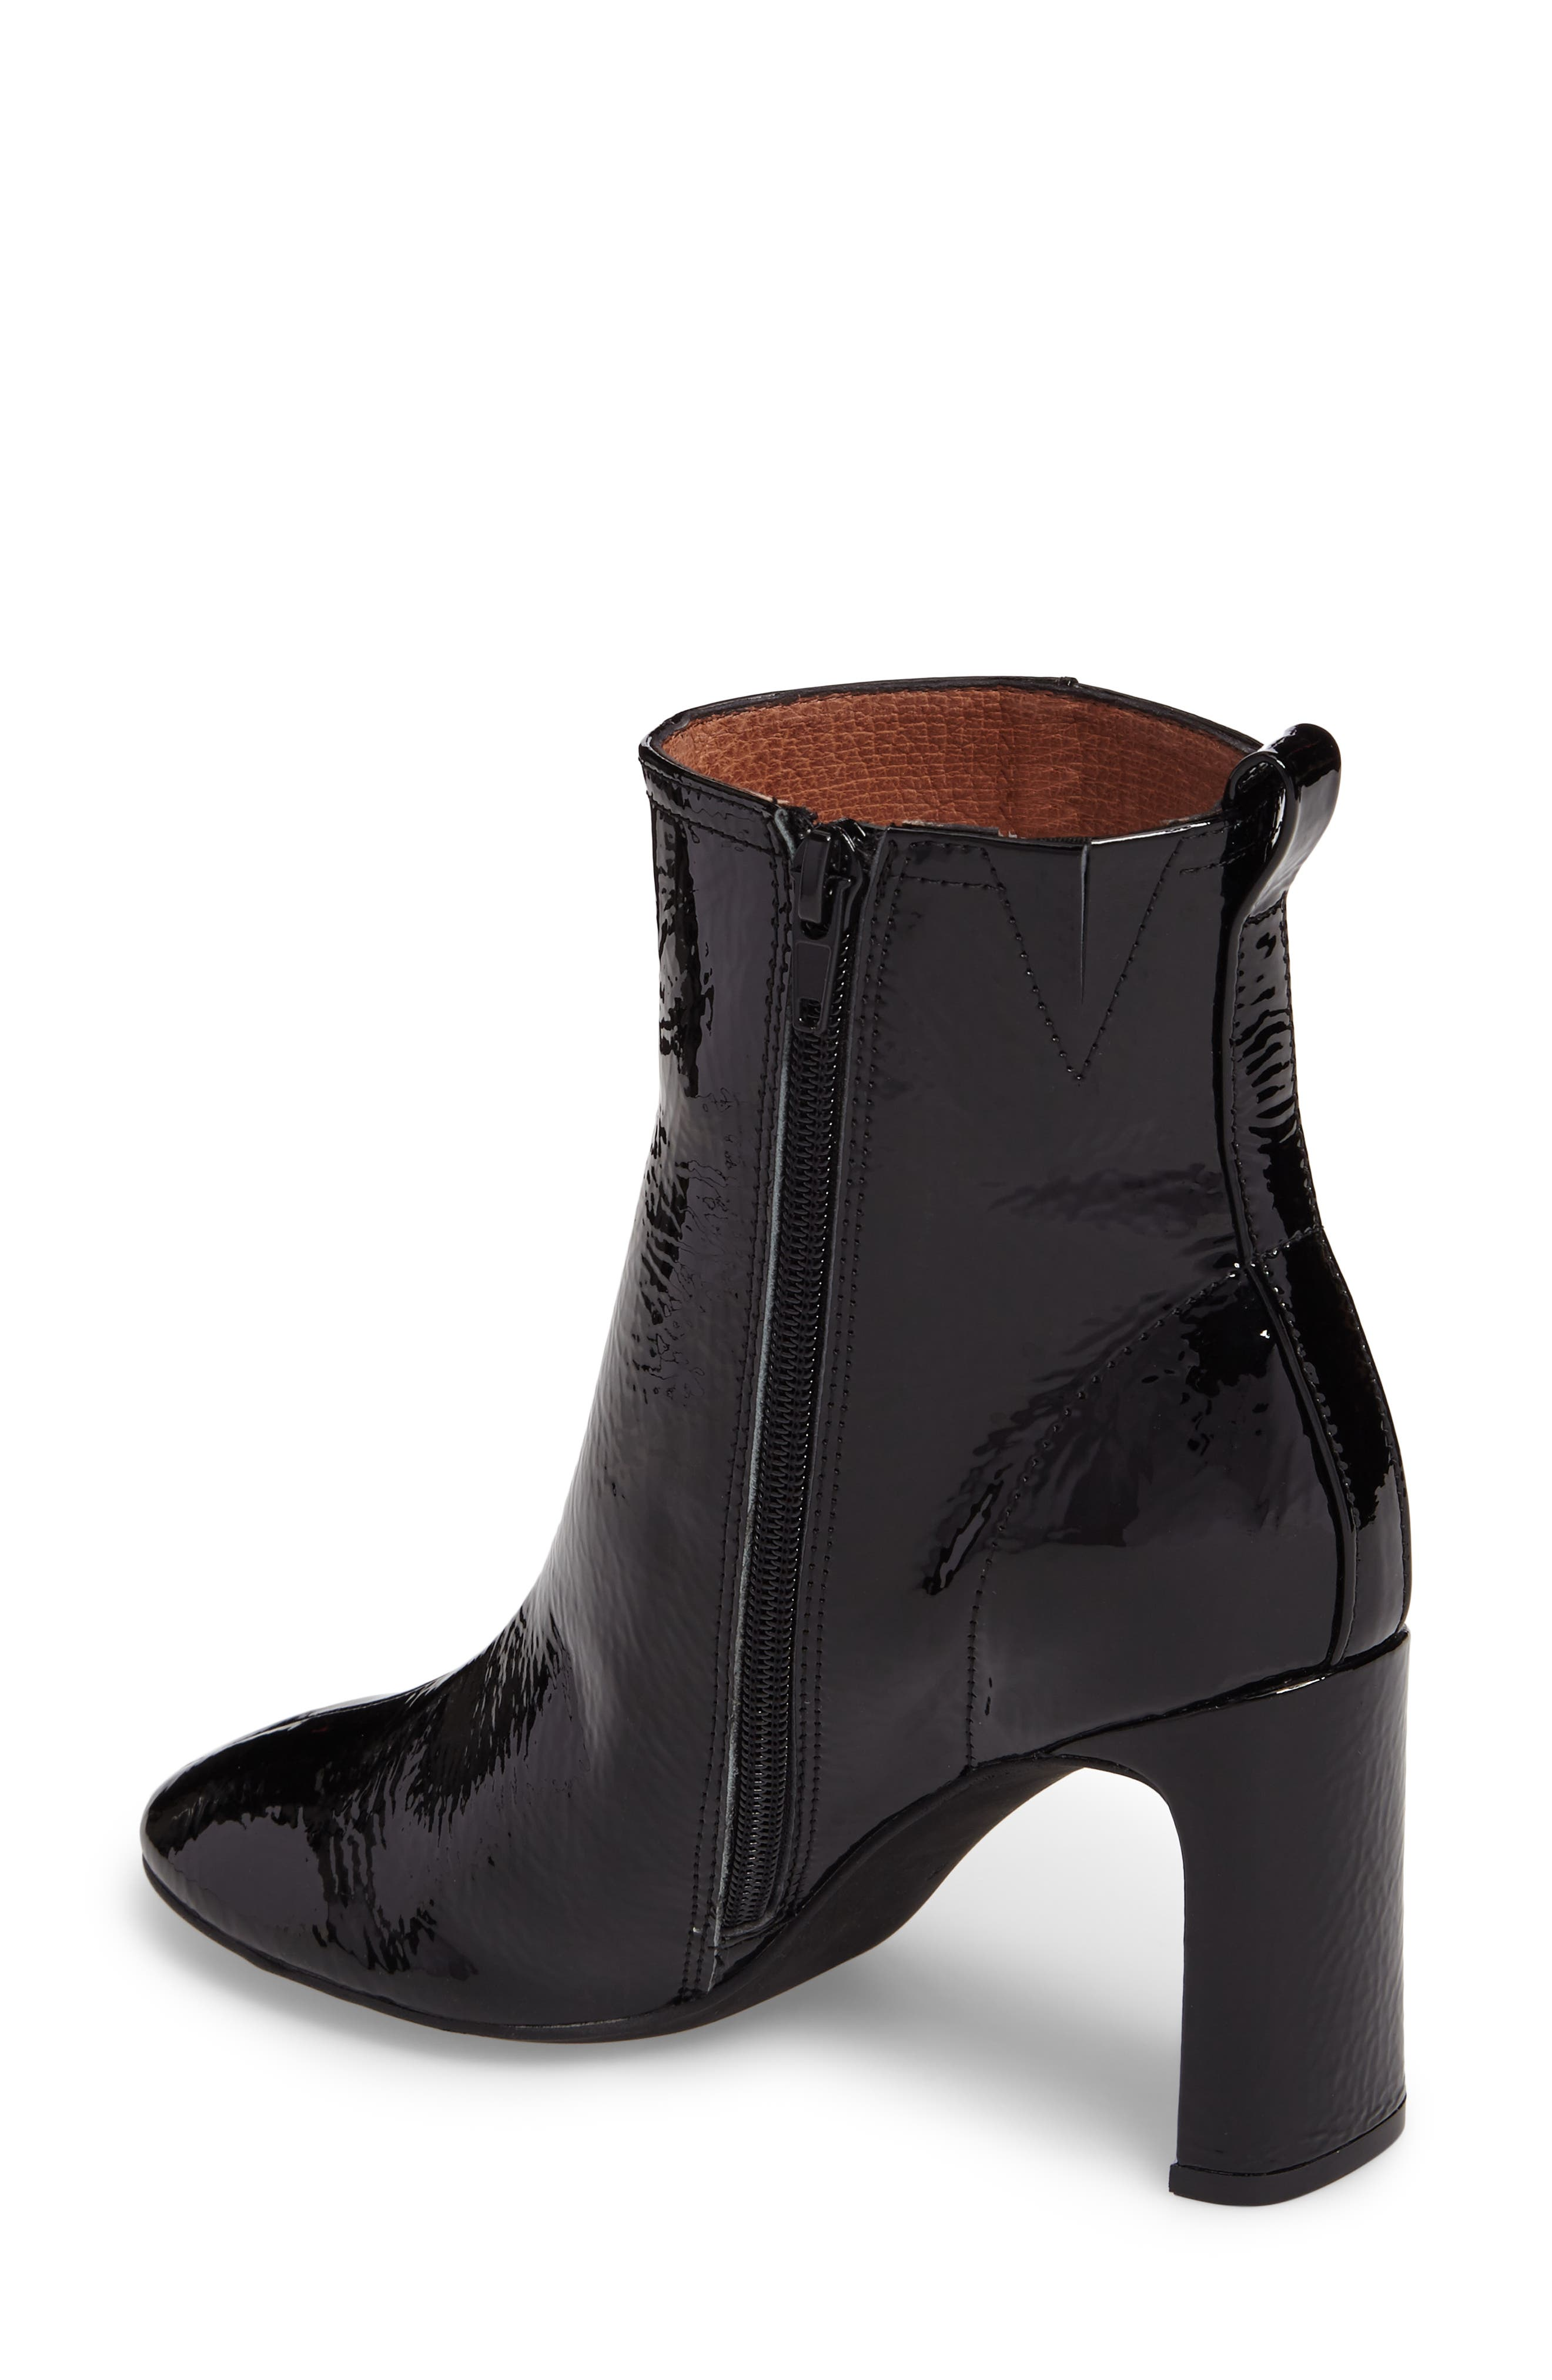 JEFFREY CAMPBELL,                             Chapel Curved Heel Bootie,                             Alternate thumbnail 2, color,                             012